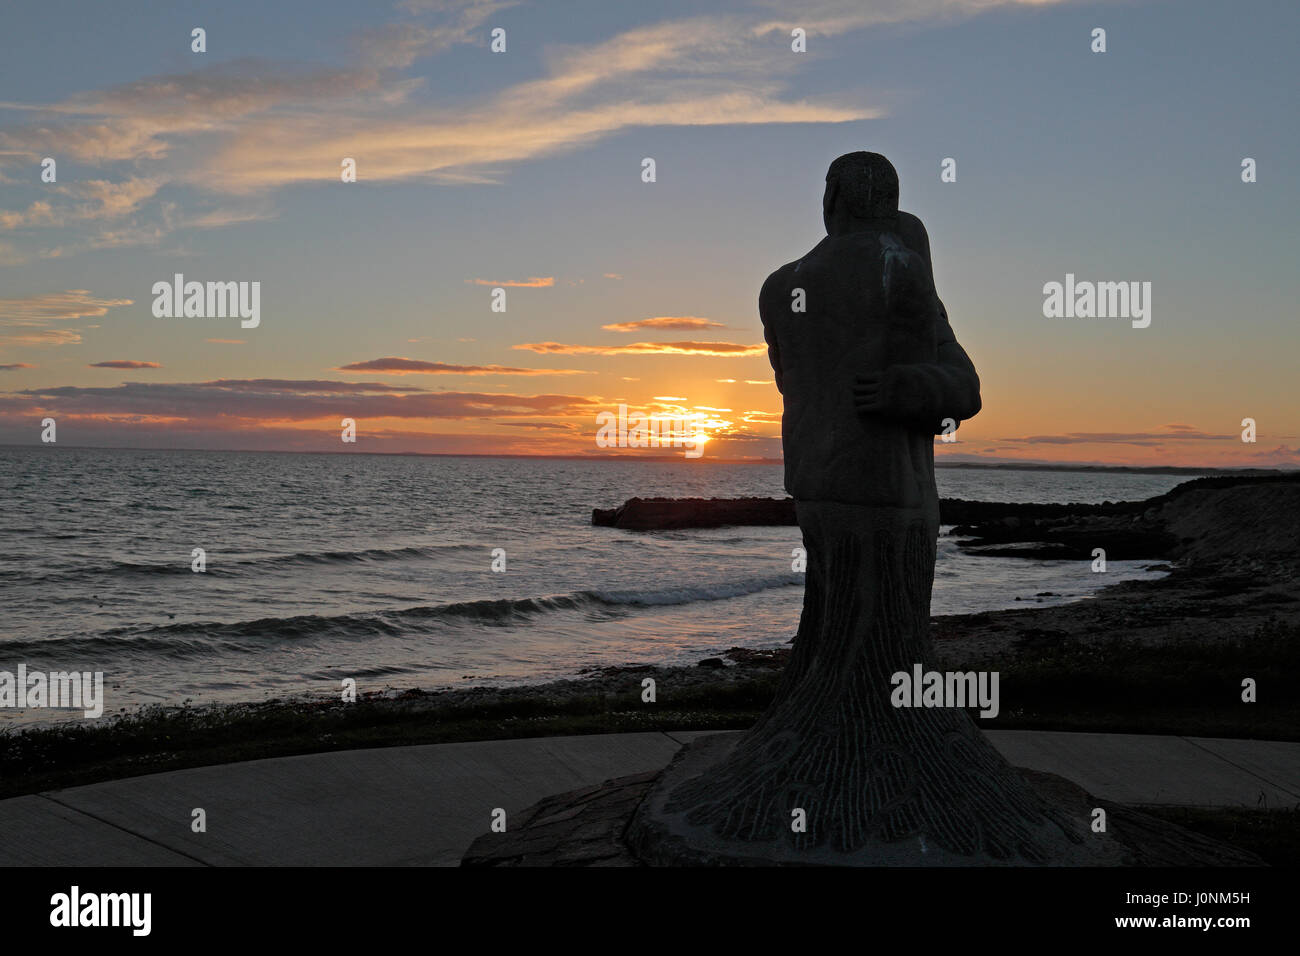 Statue of a grieving couple in the Memorial Garden for those Lost at Sea in Kilmore Quay, Co Wexford, southern Ireland. - Stock Image